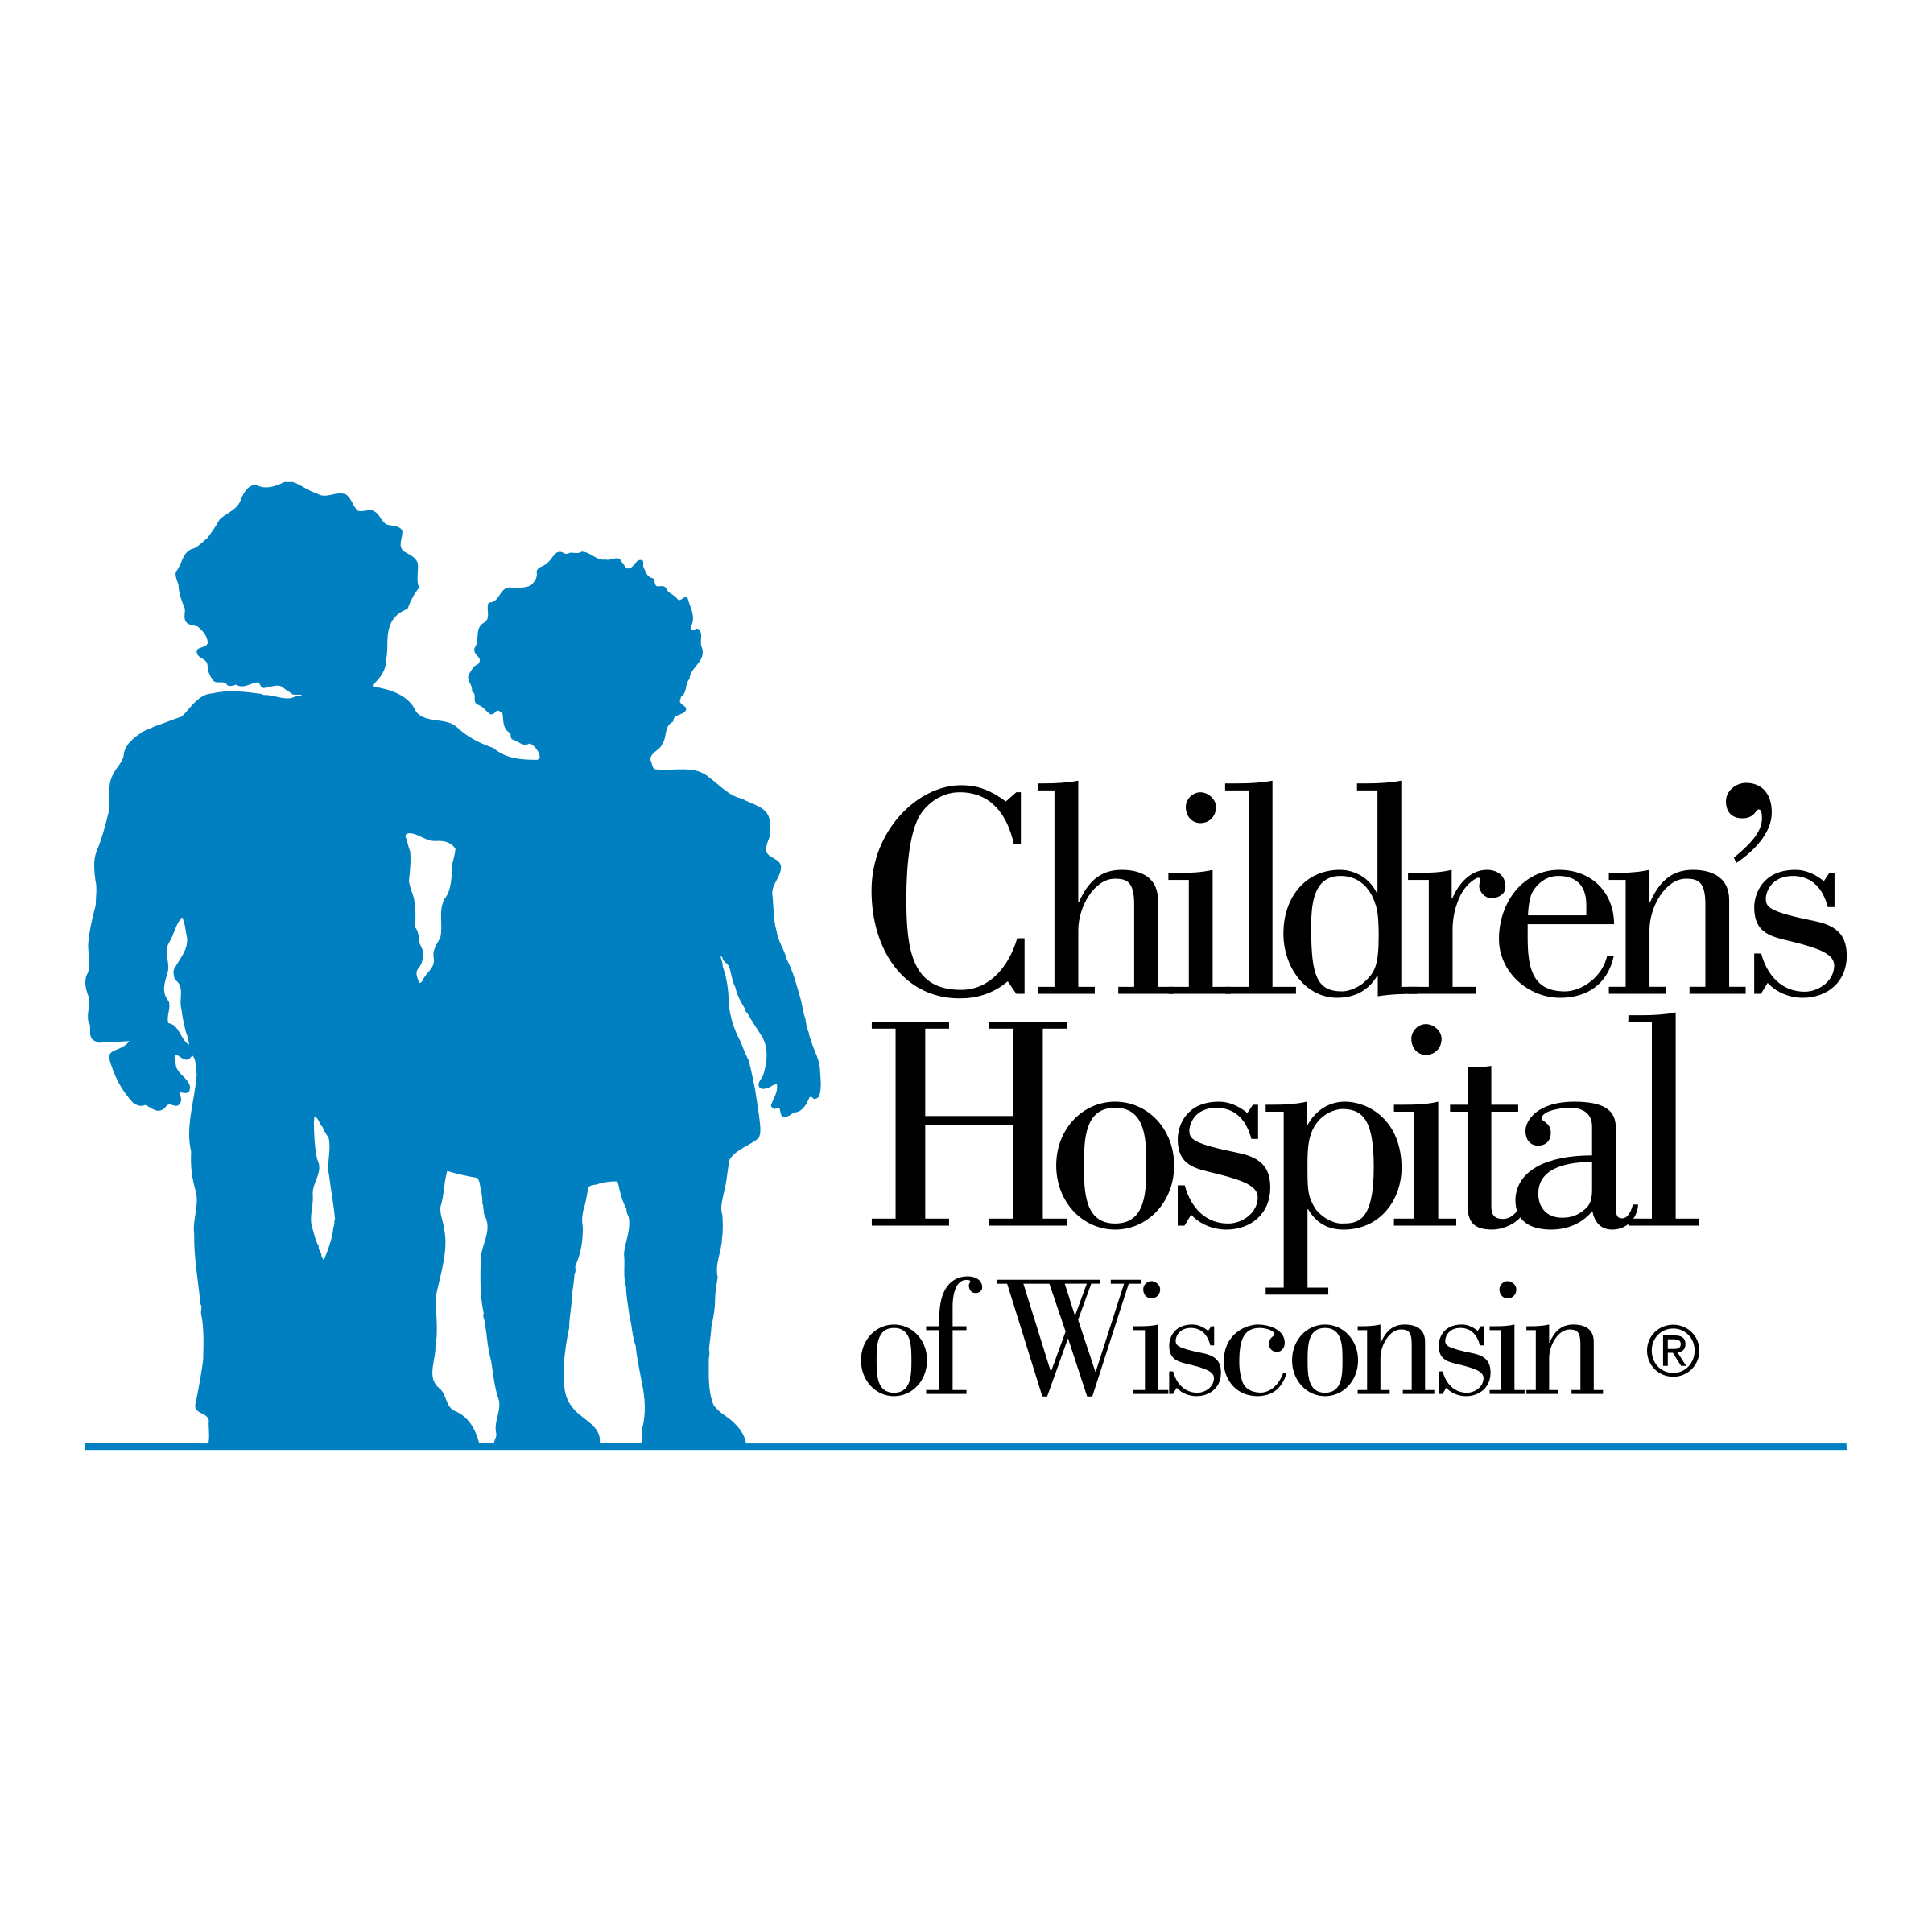 childrens-hospital-of-wisconsin-logo-png-transparent.png